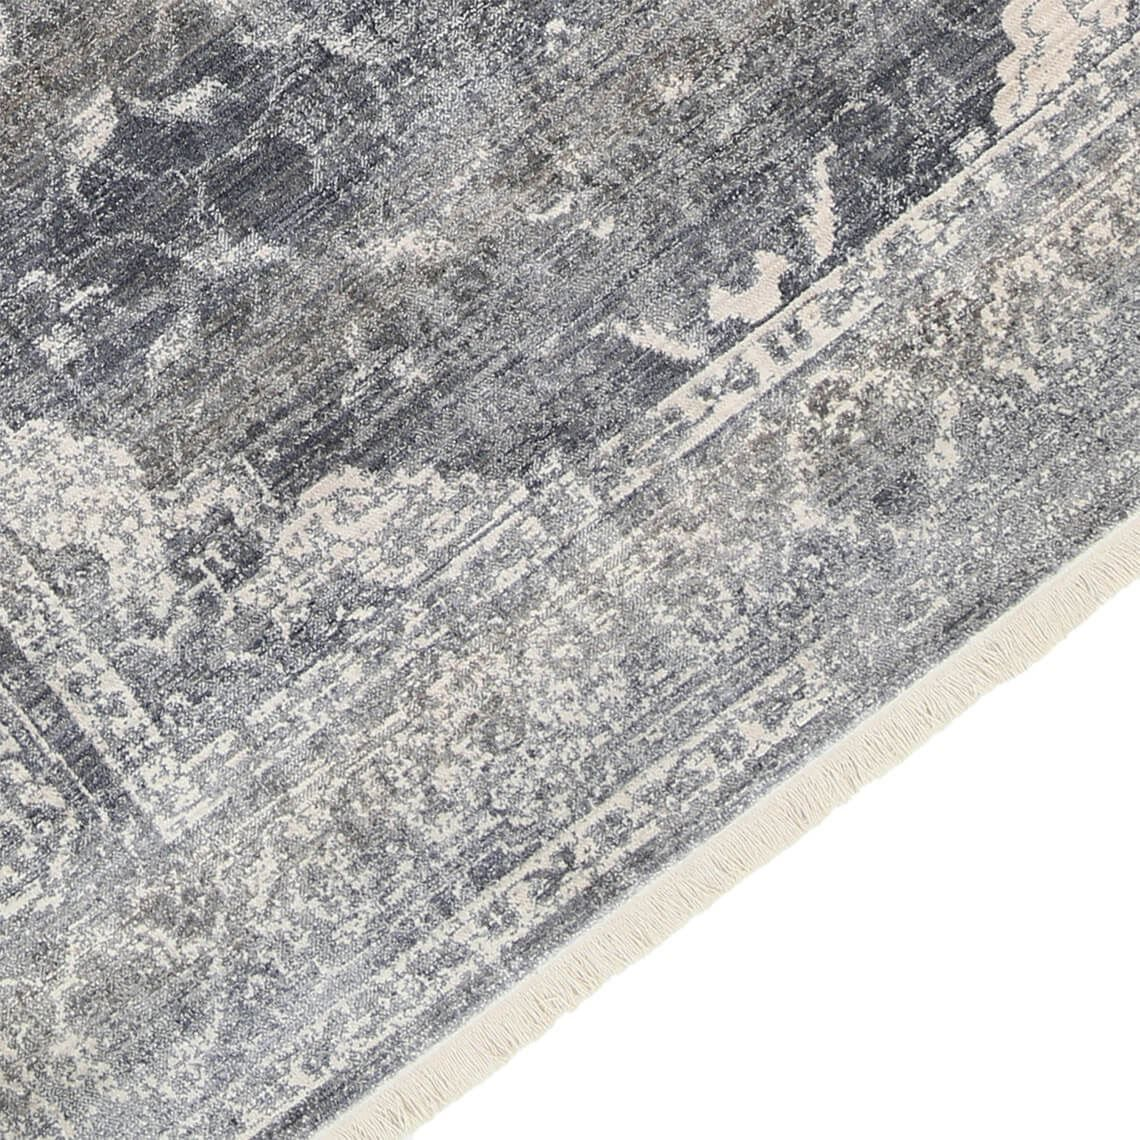 Freedom Furniture Rugs Alacati 160 X 235cm Rug Grey Products Rugs Grey Rugs Rug Size